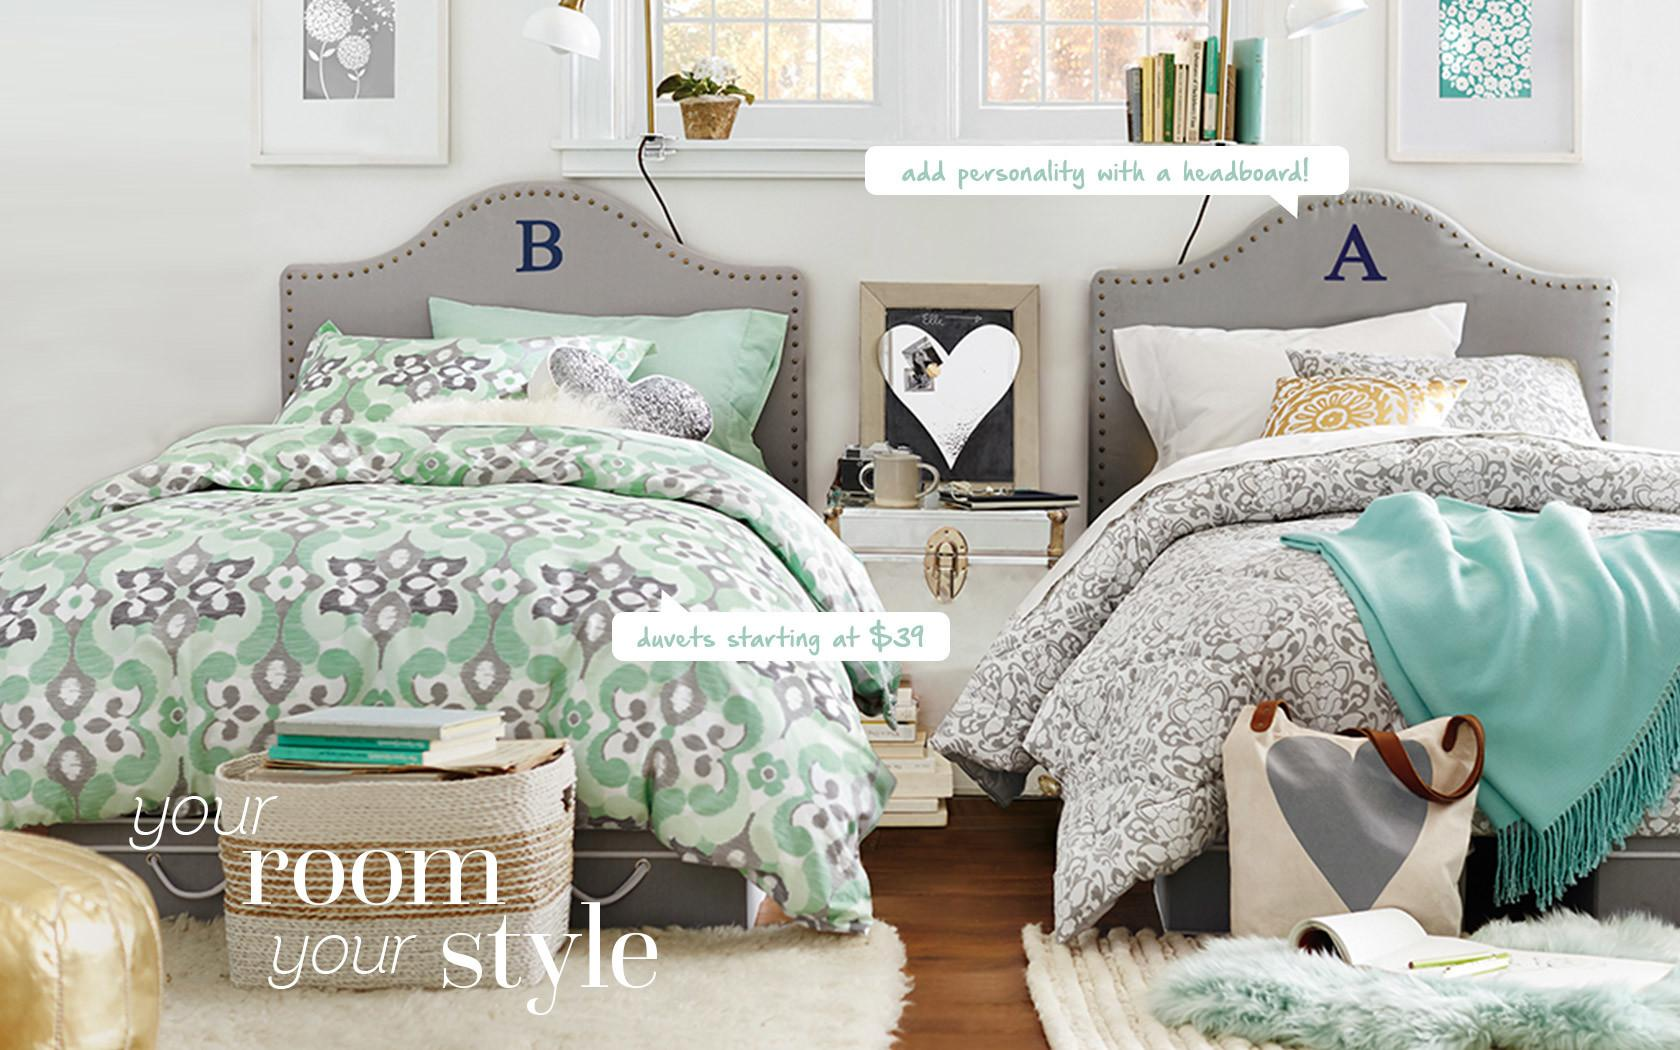 Your Room Style